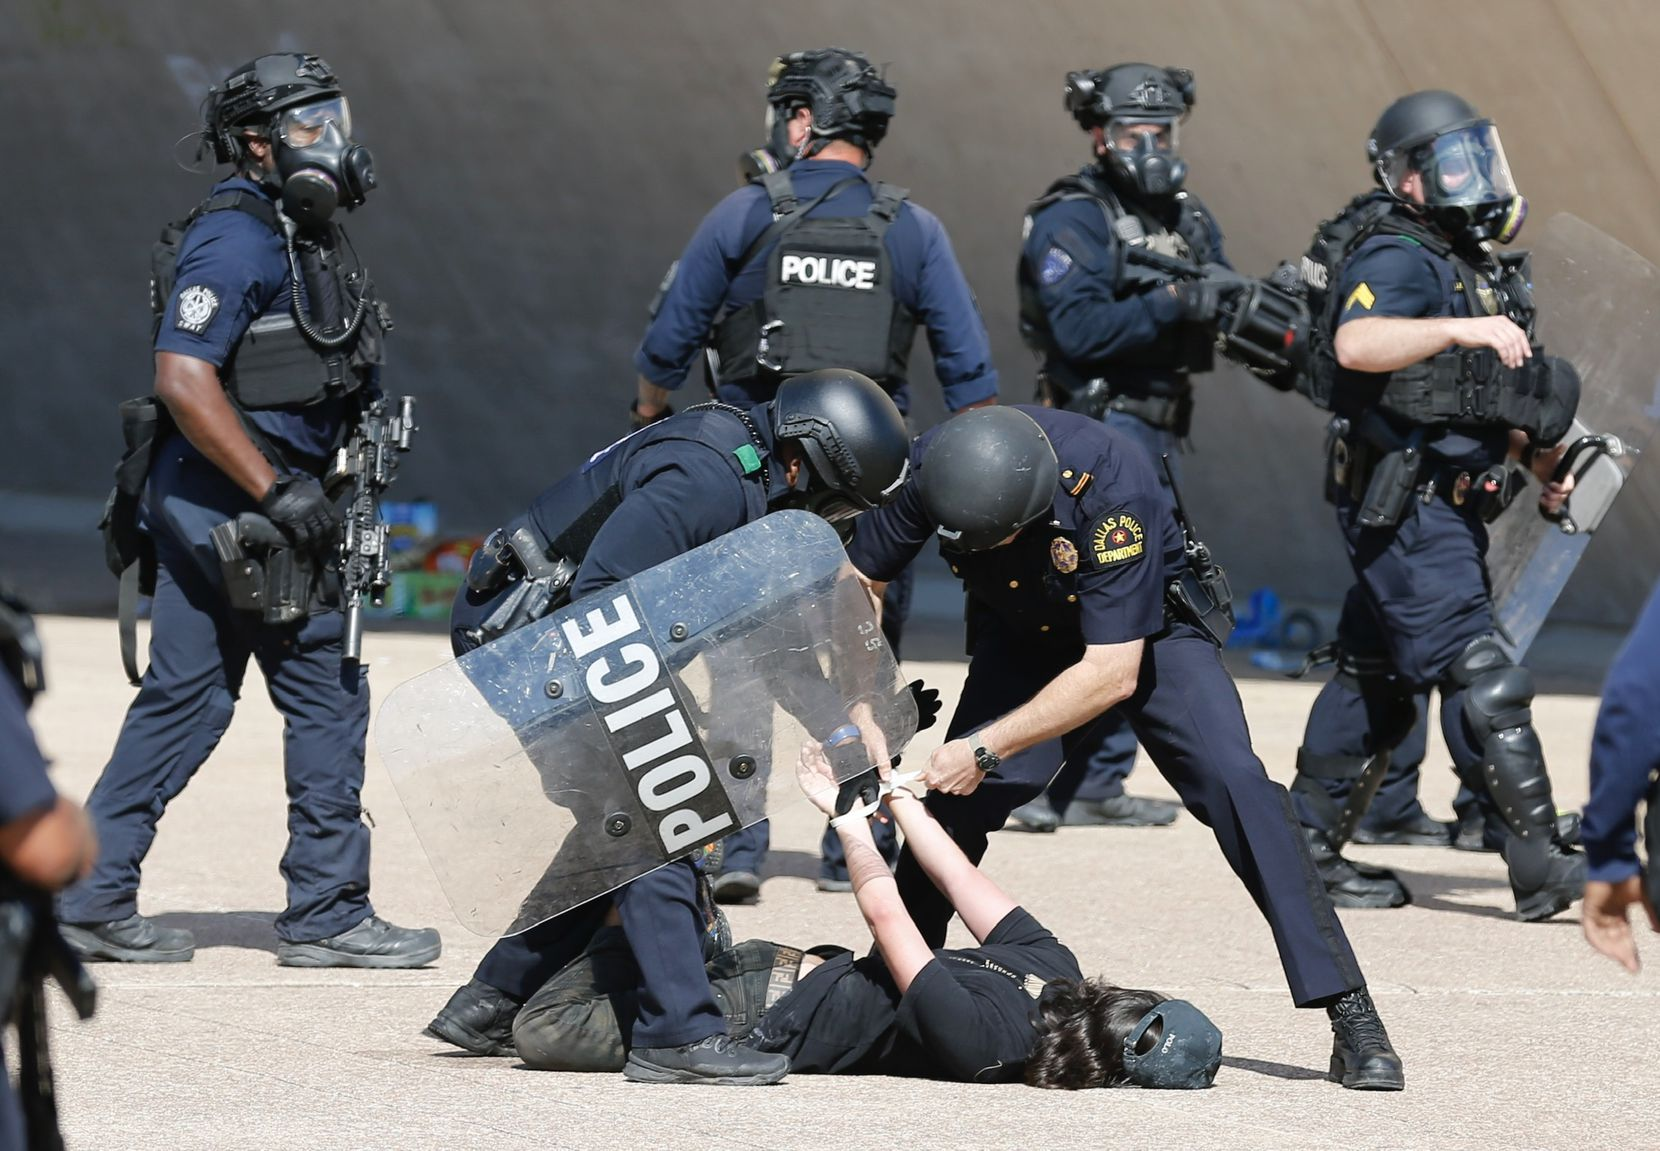 A protester is detained during a demonstration against police brutality in downtown Dallas, on Saturday, May 30, 2020. George Floyd died in police custody in Minneapolis on May 25.